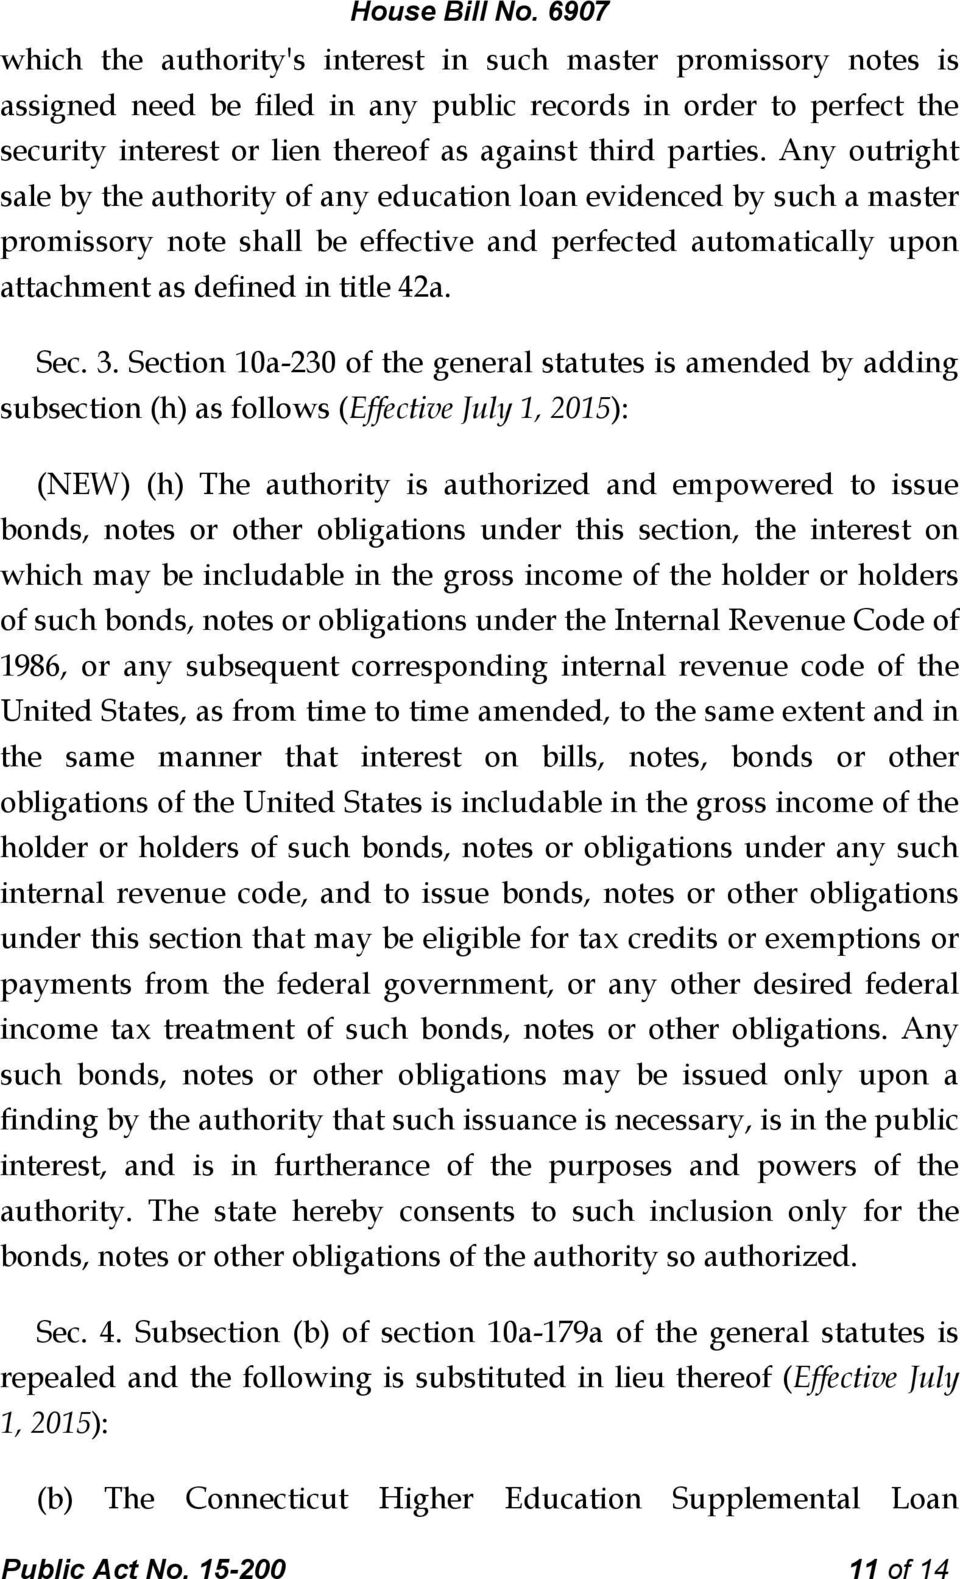 Section 10a-230 of the general statutes is amended by adding subsection (h) as follows (Effective July 1, 2015): (NEW) (h) The authority is authorized and empowered to issue bonds, notes or other